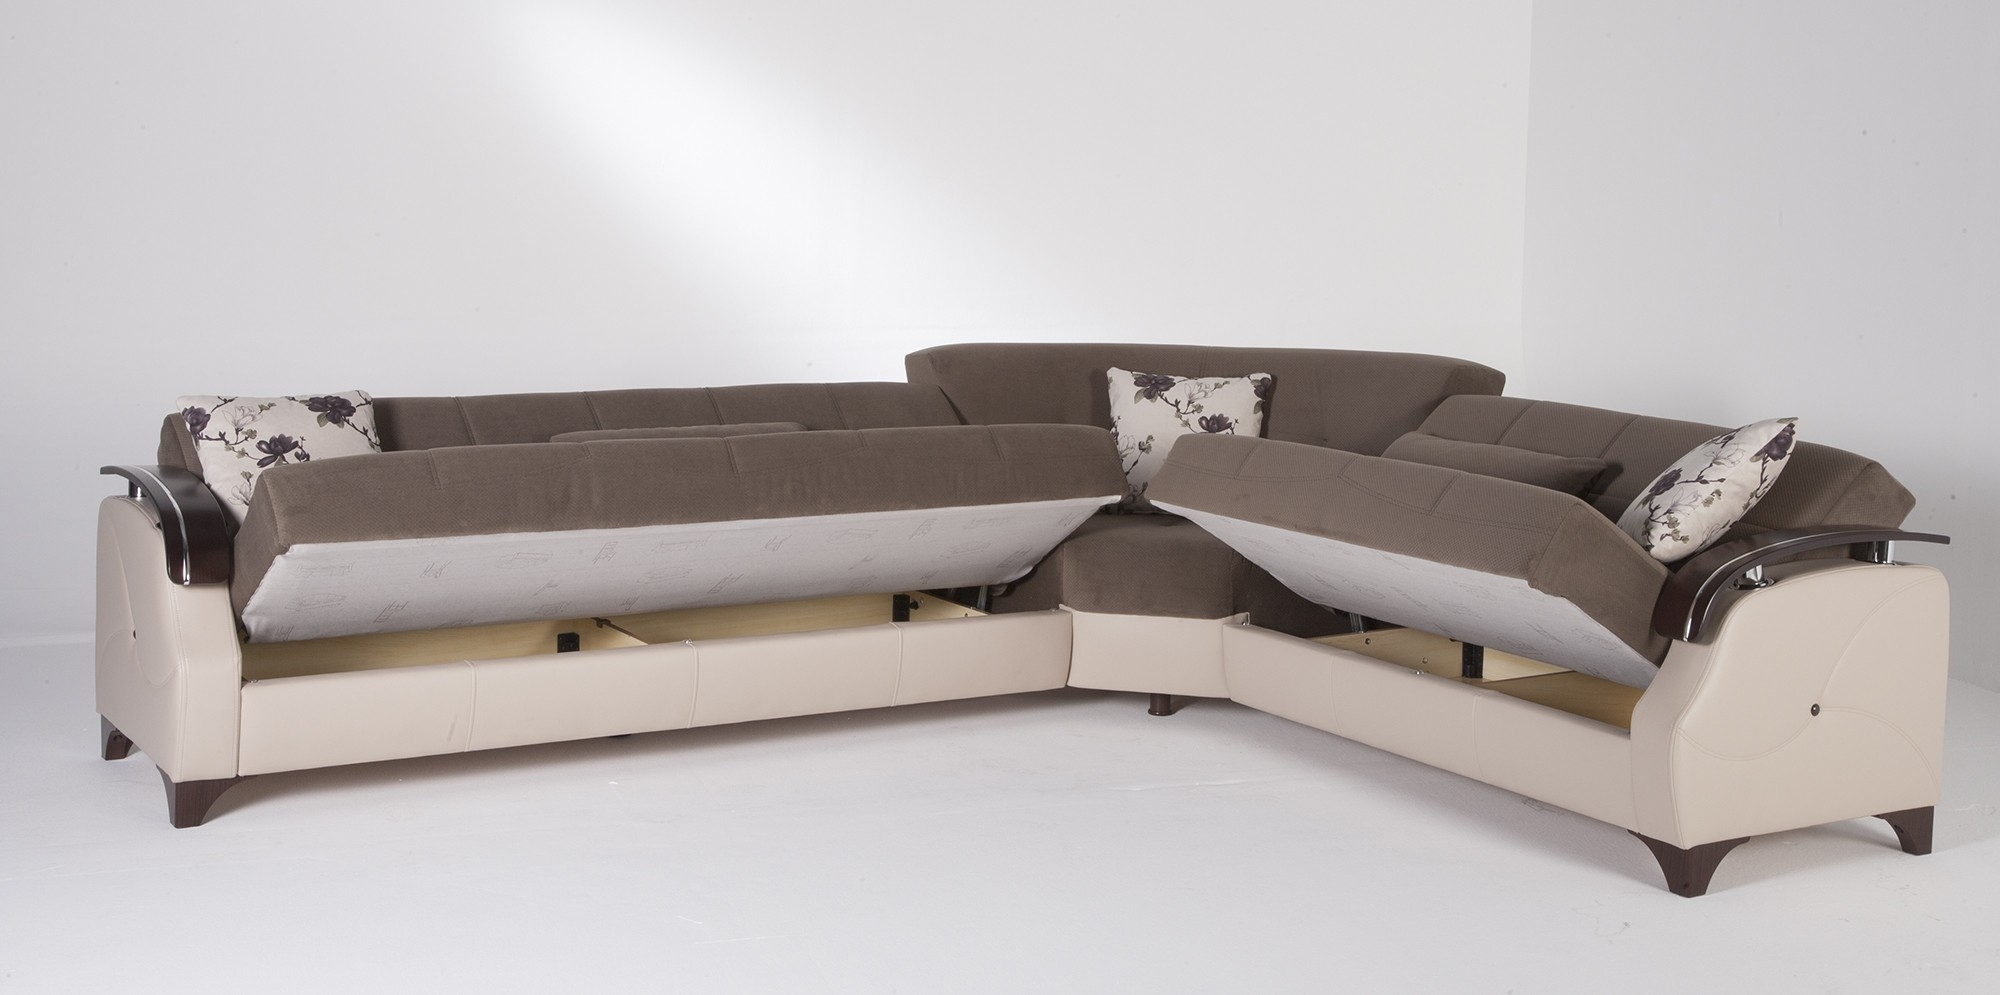 Sectional Sofa Design: Cheap Sectional Sofas Furniture Design Stock Regarding L Shaped Sectional Sleeper Sofas (View 8 of 10)